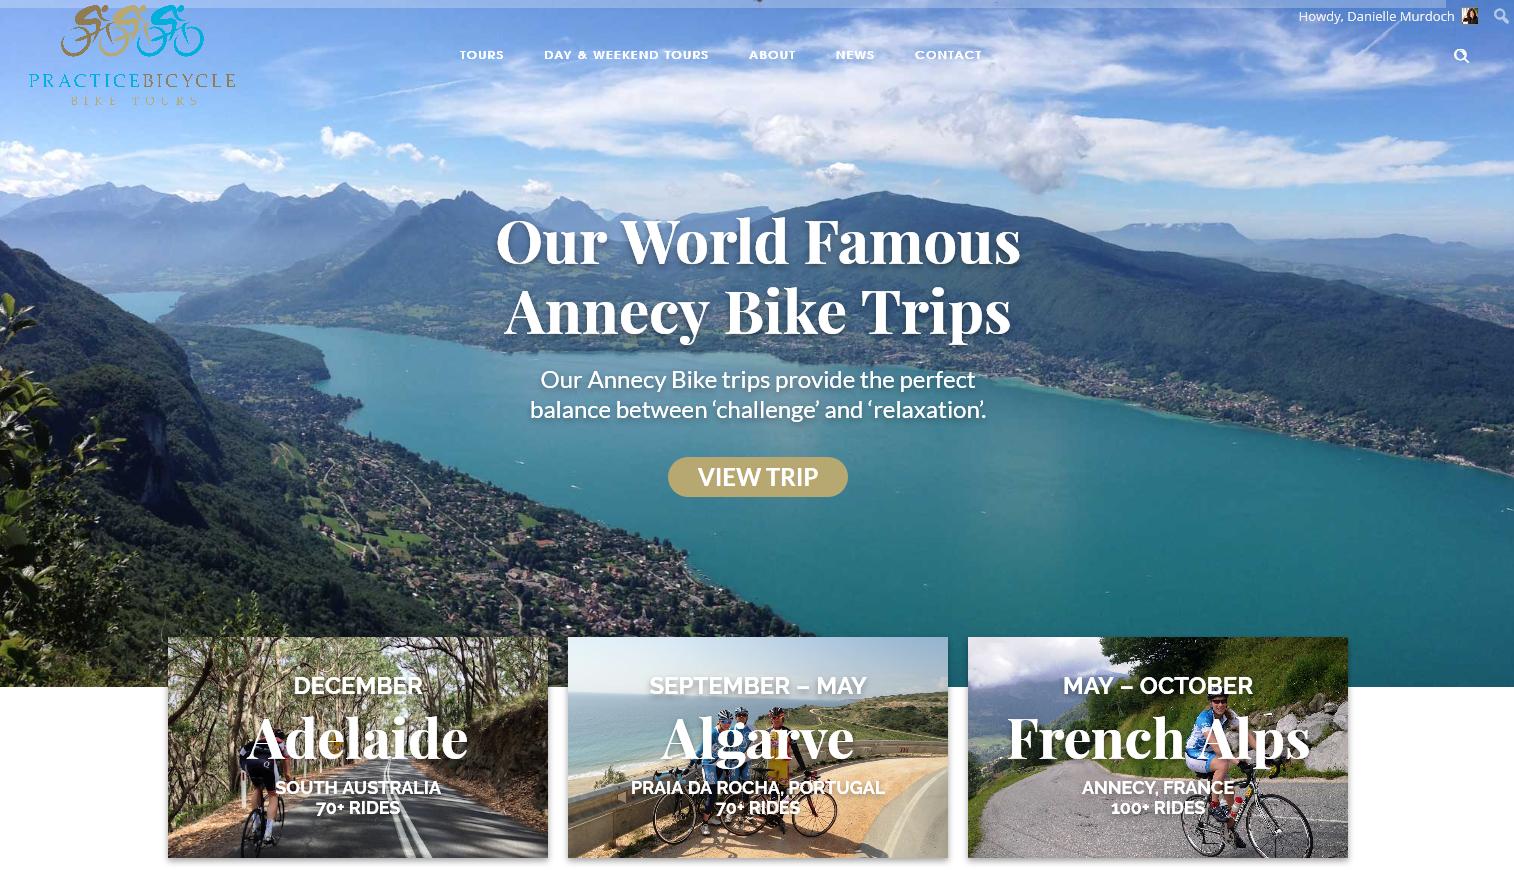 Practicebicycle Bike Tours NEW TOURS & WEBSITE!